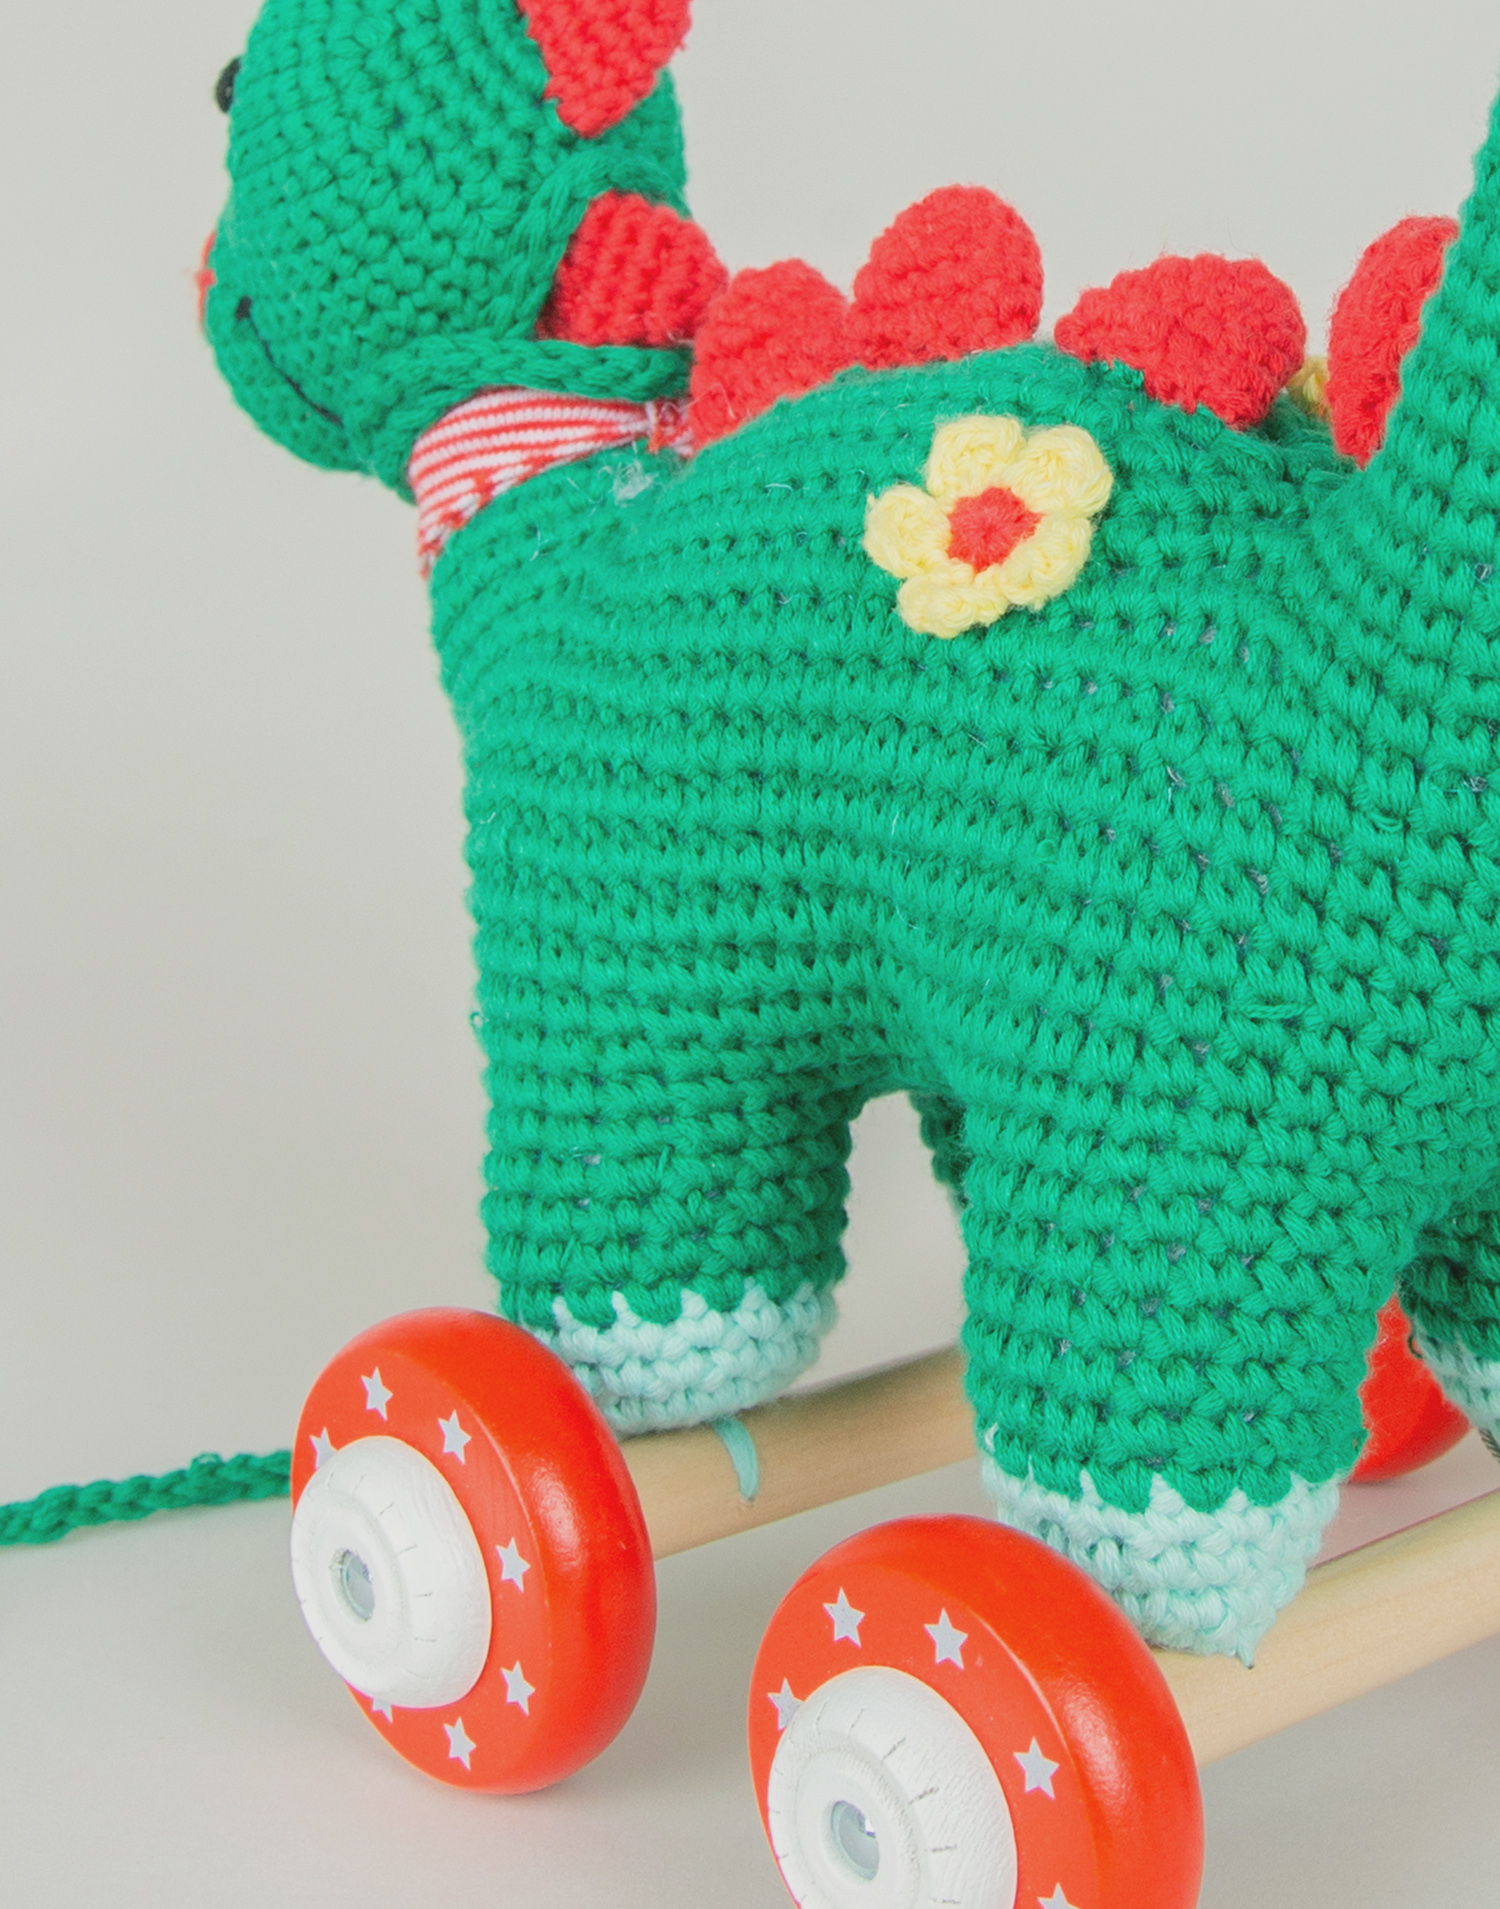 Knitted dinosaur drag toy